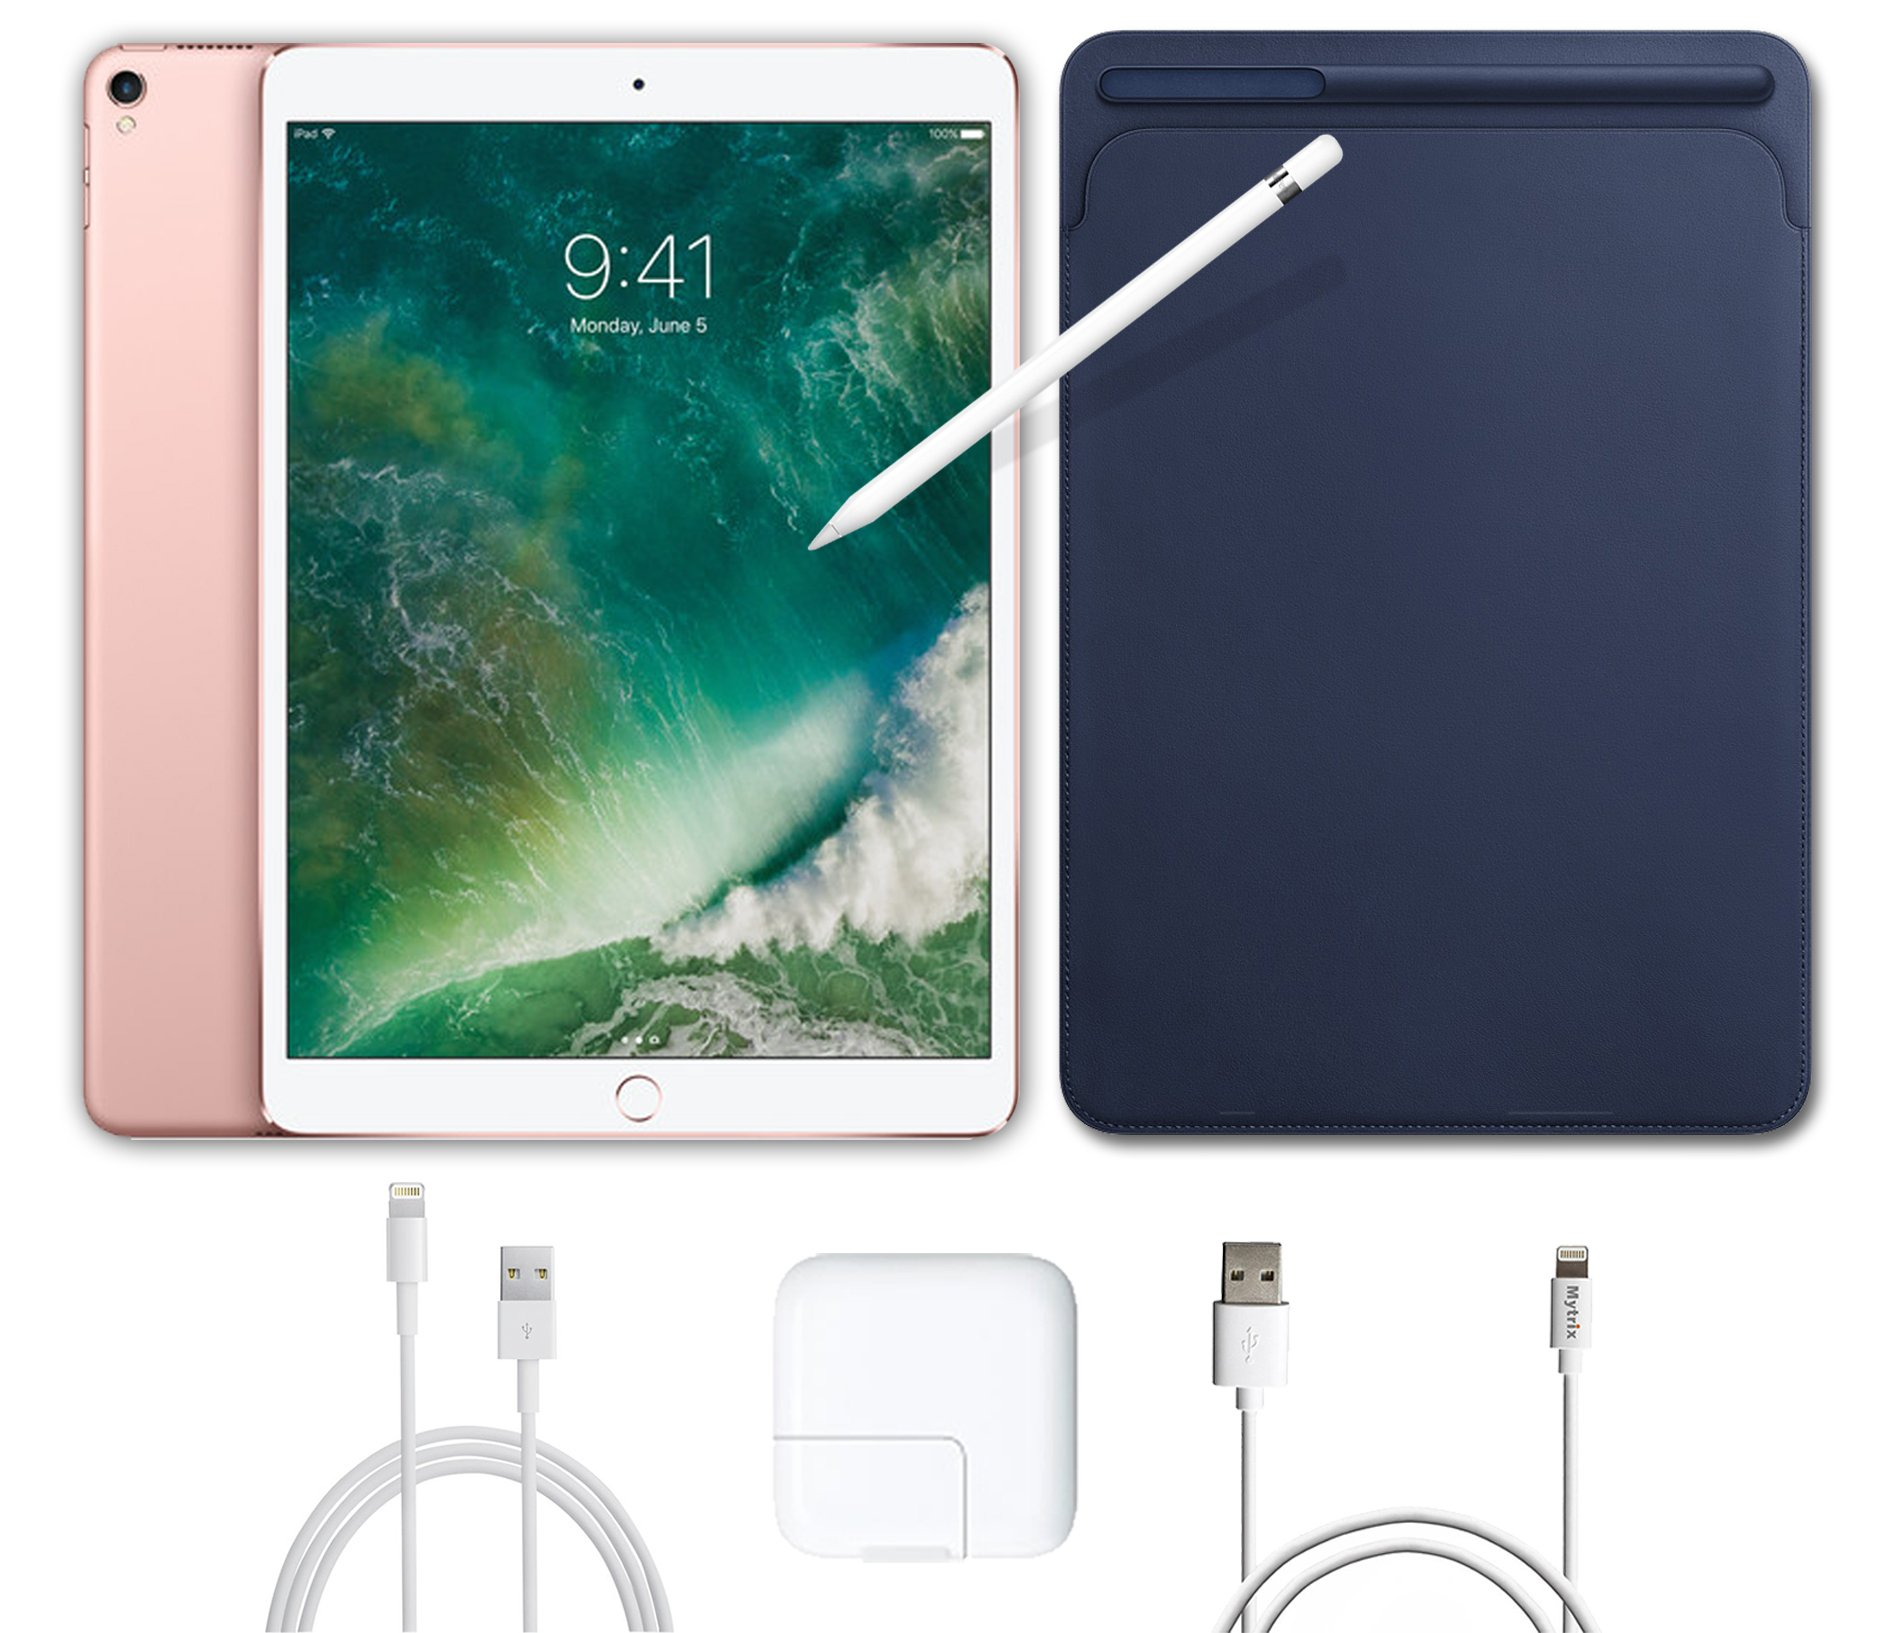 2017 New IPad Pro Bundle (4 Items): Apple 10.5 inch iPad Pro with Wi-Fi 512 GB Rose Gold, Leather Sleeve Midnight Blue, Apple Pencil and Mytrix USB Apple Lightning Cable by uShopMall (Image #1)